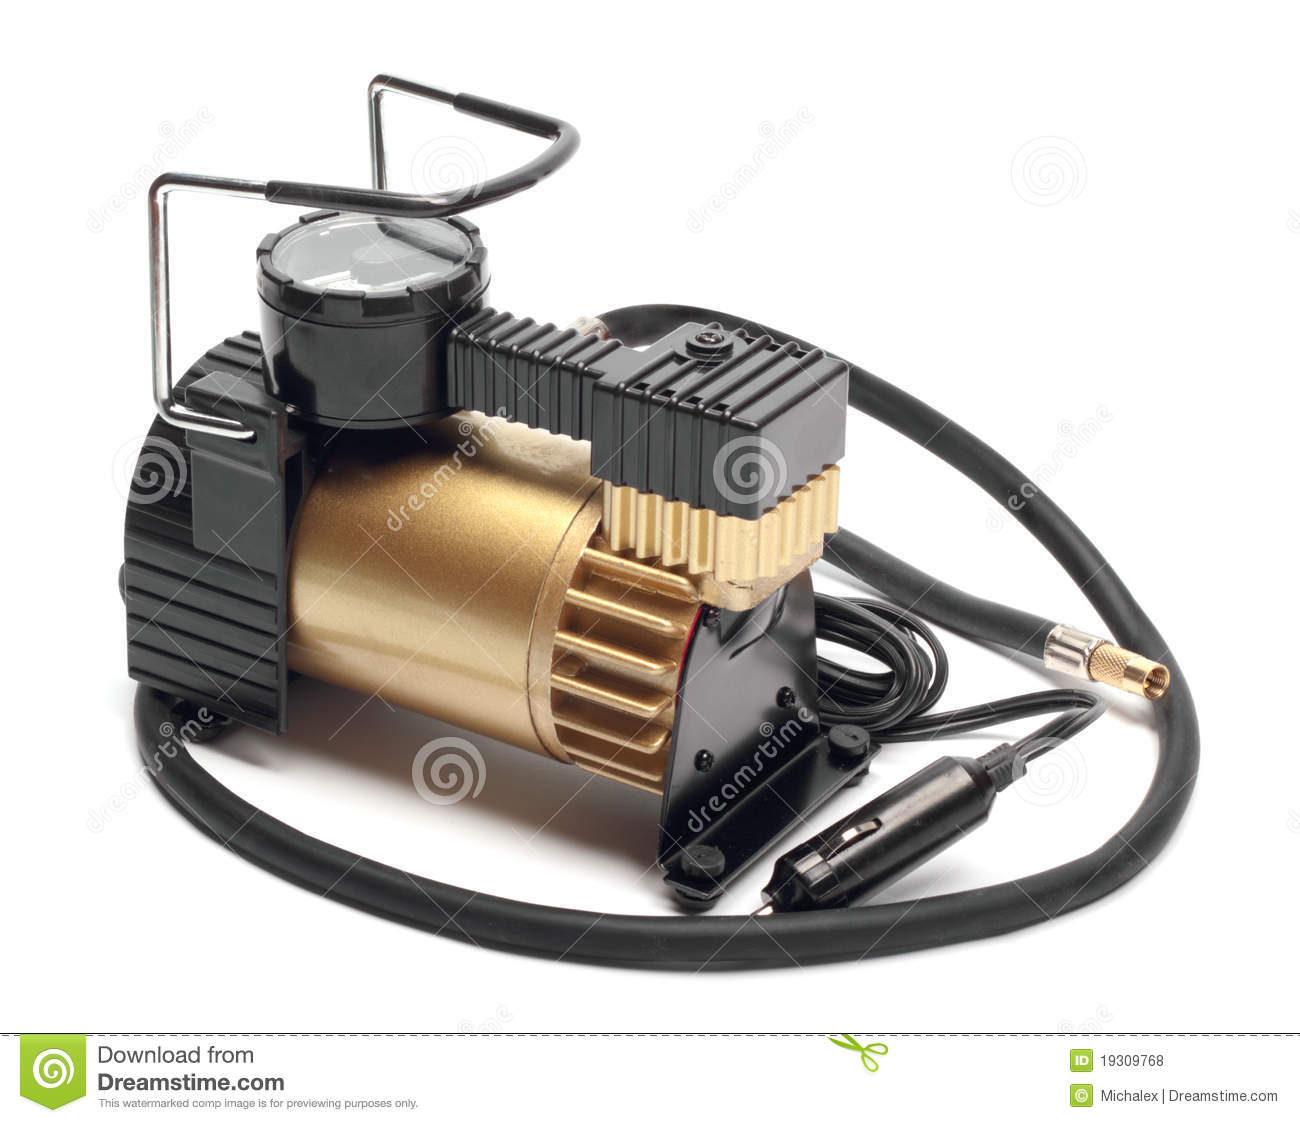 Automotive Air Compressor Release Date Price and Specs #82A229